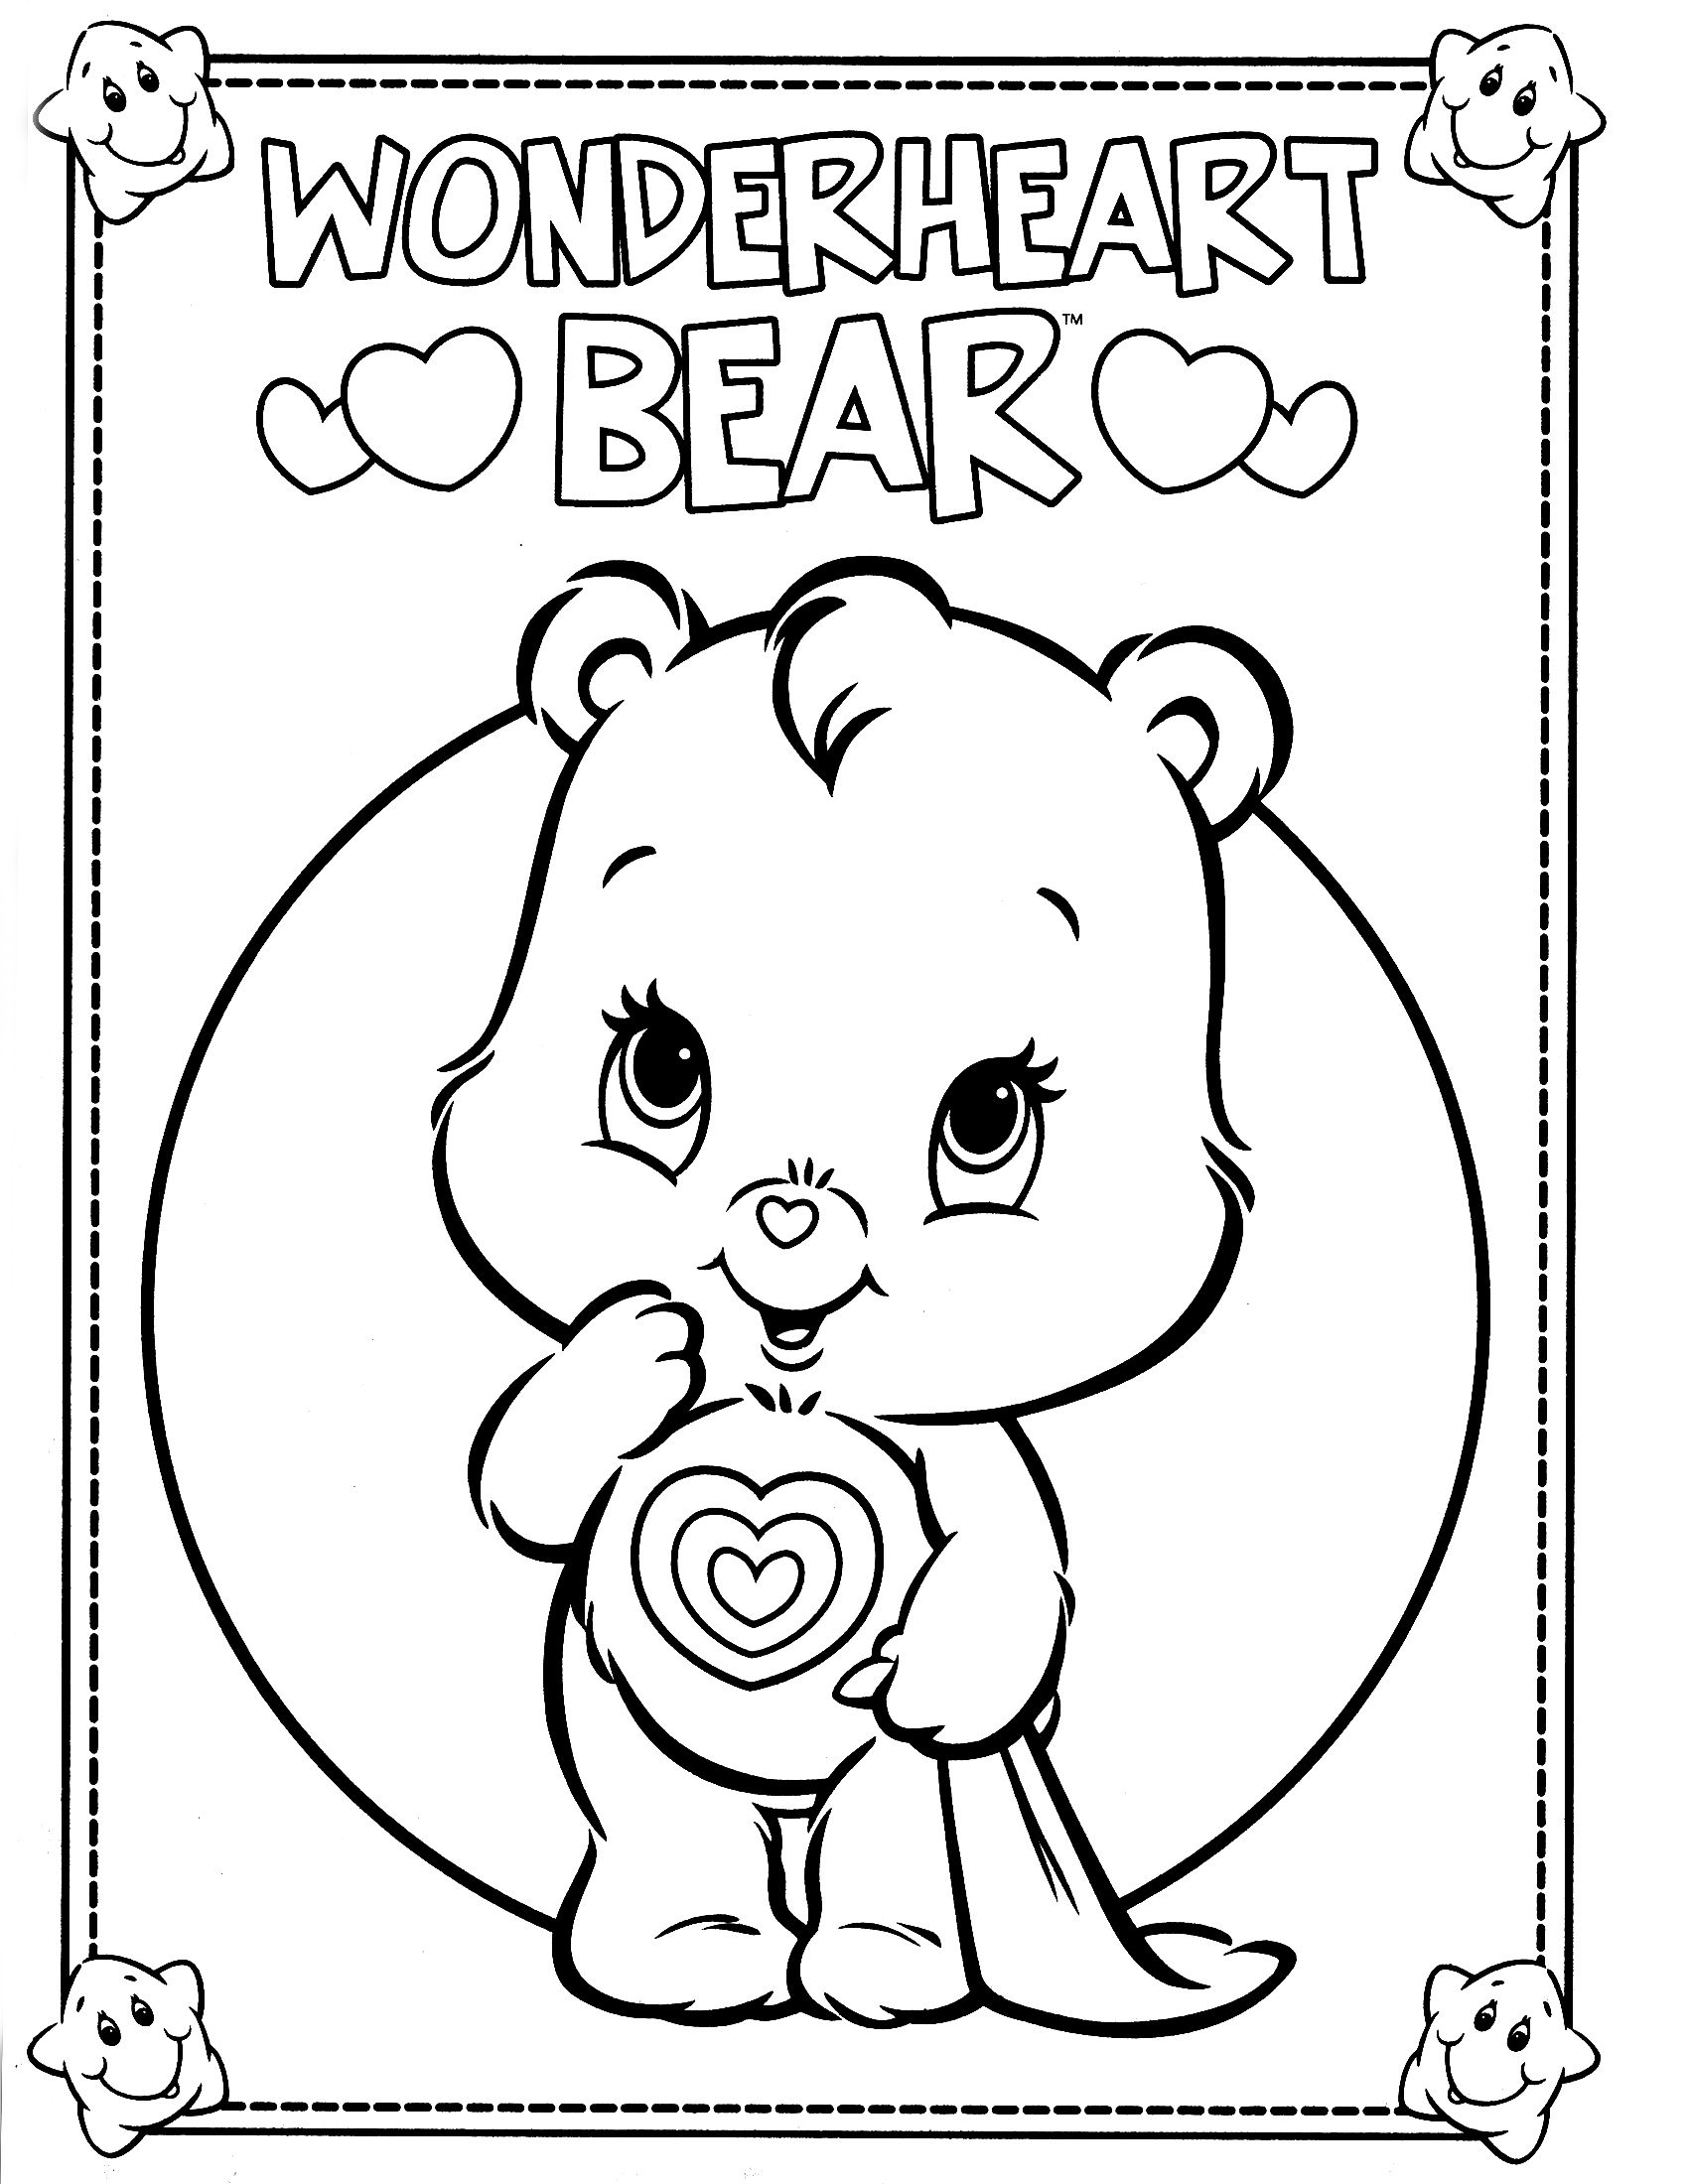 care bears coloring page Disegni, Bambini